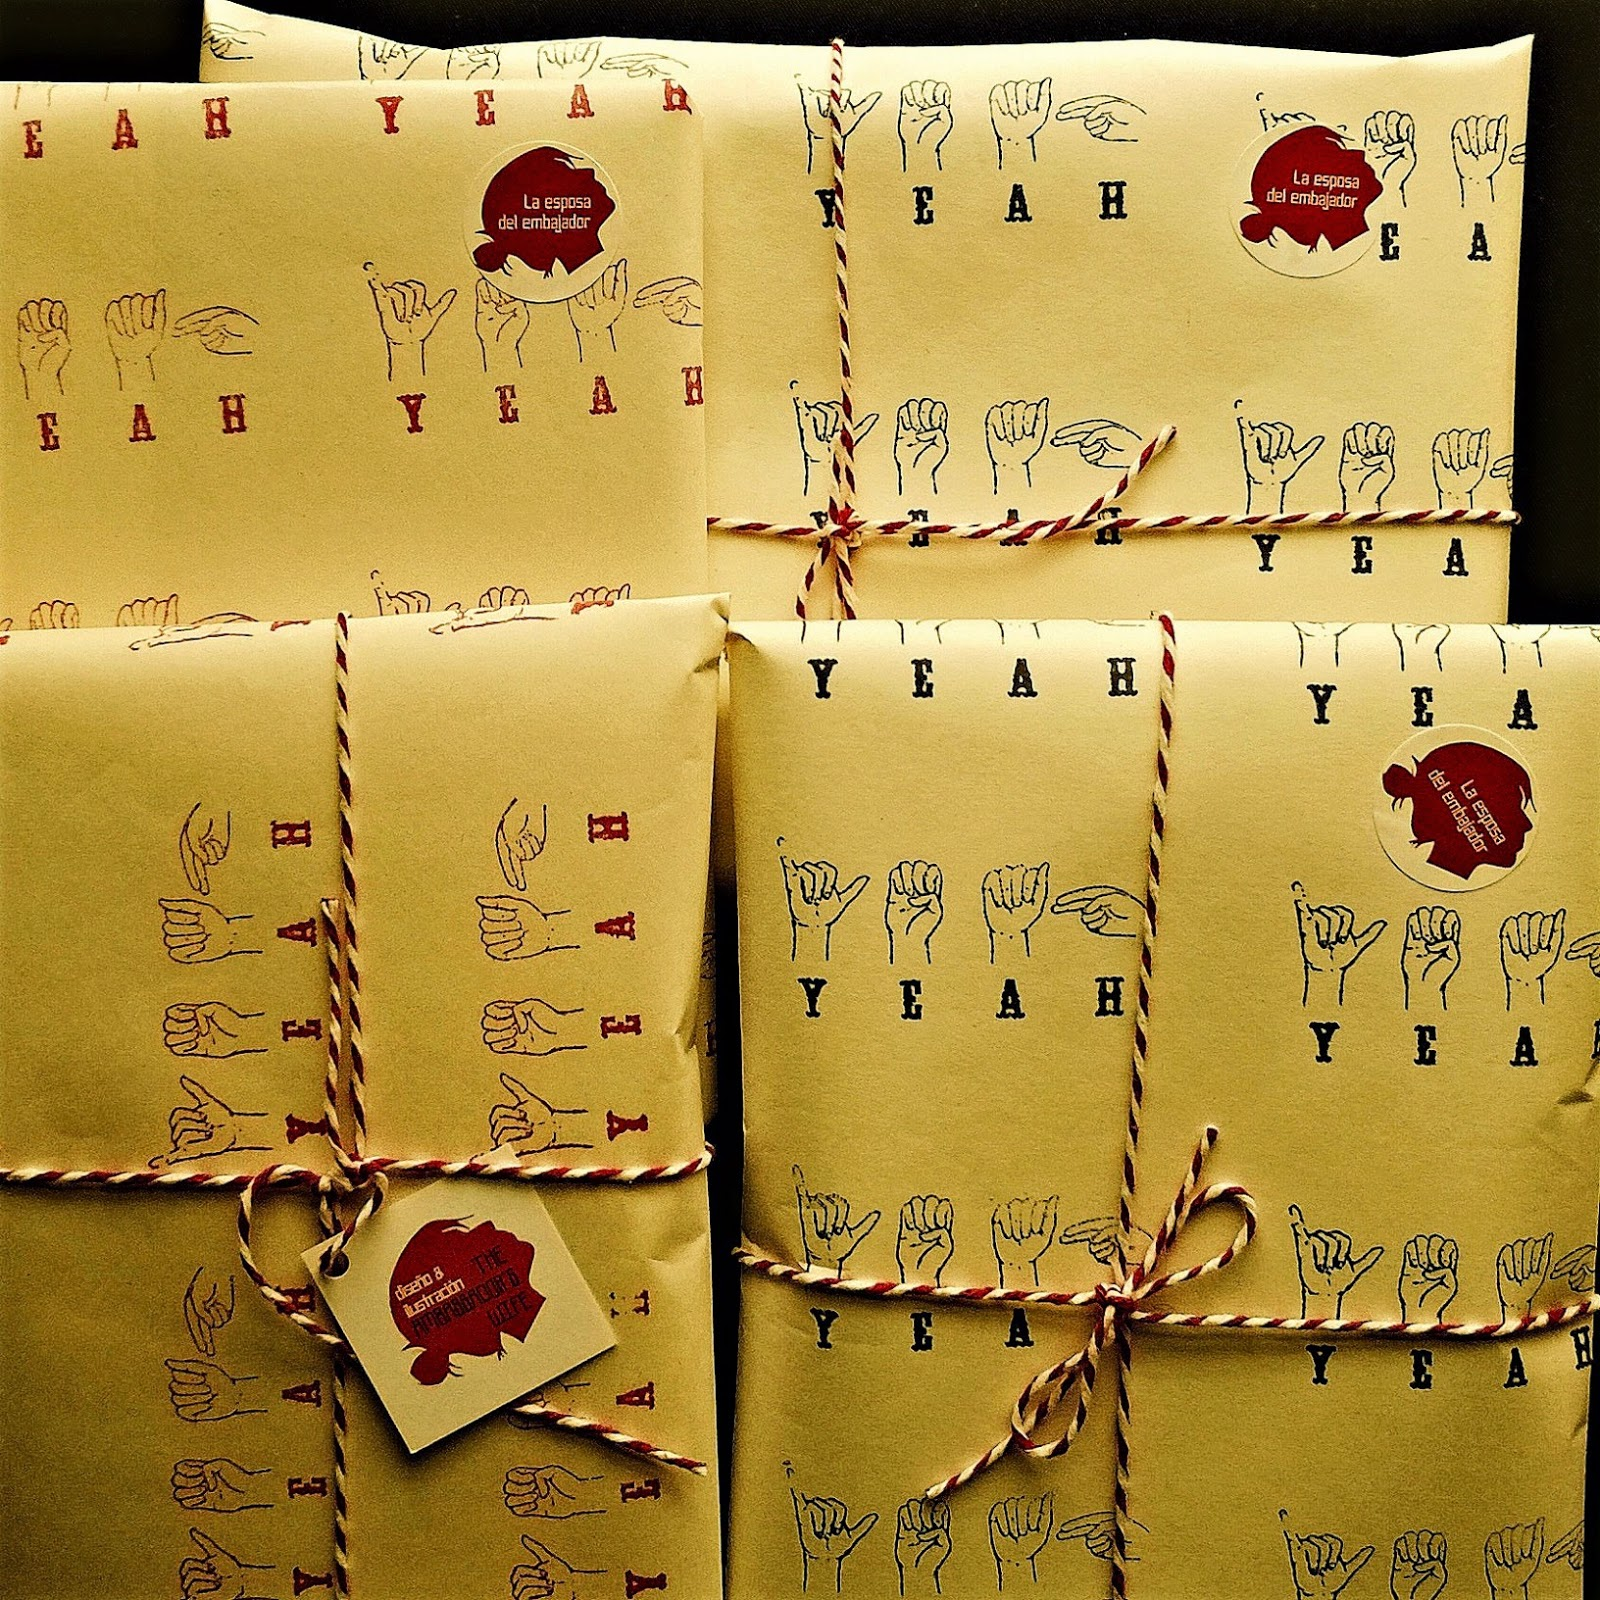 La esposa del embajador - Packaging